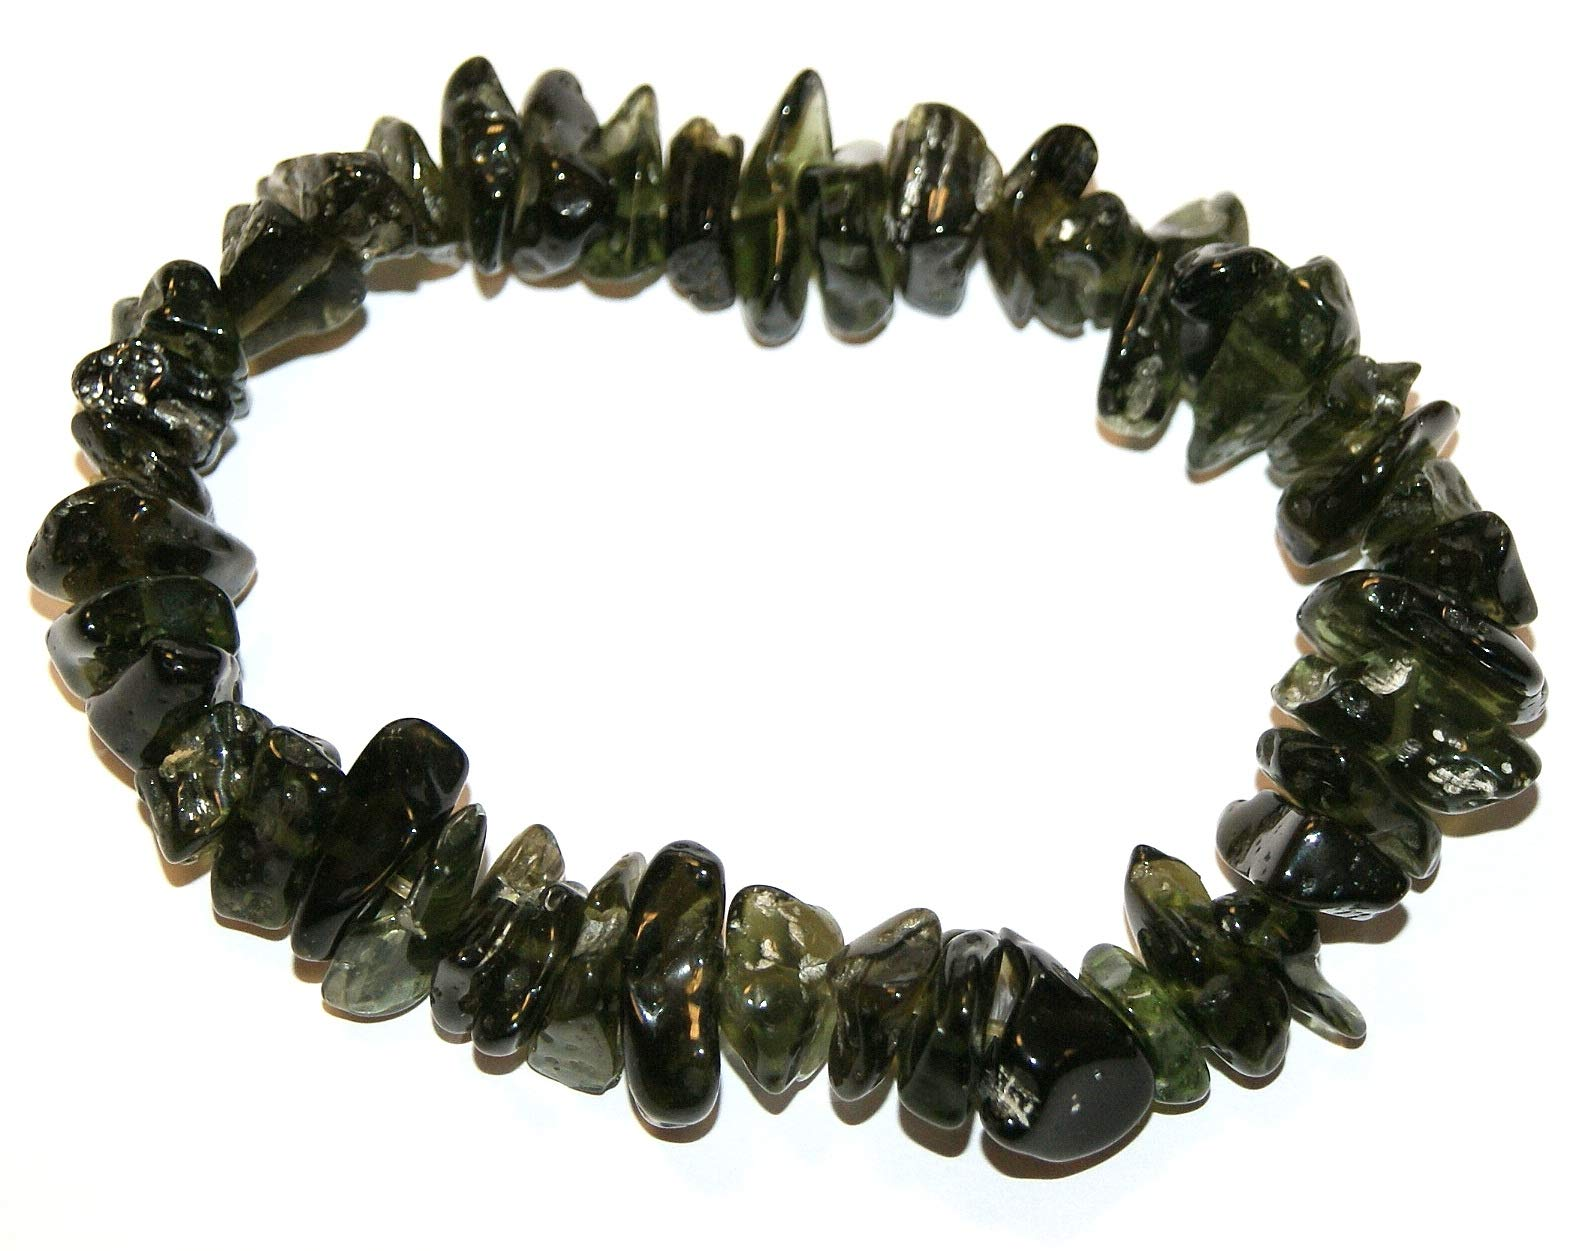 Moldavite Bracelet High Vibration Crystals Raw Polished 35.2 Grams by Gifts and Guidance